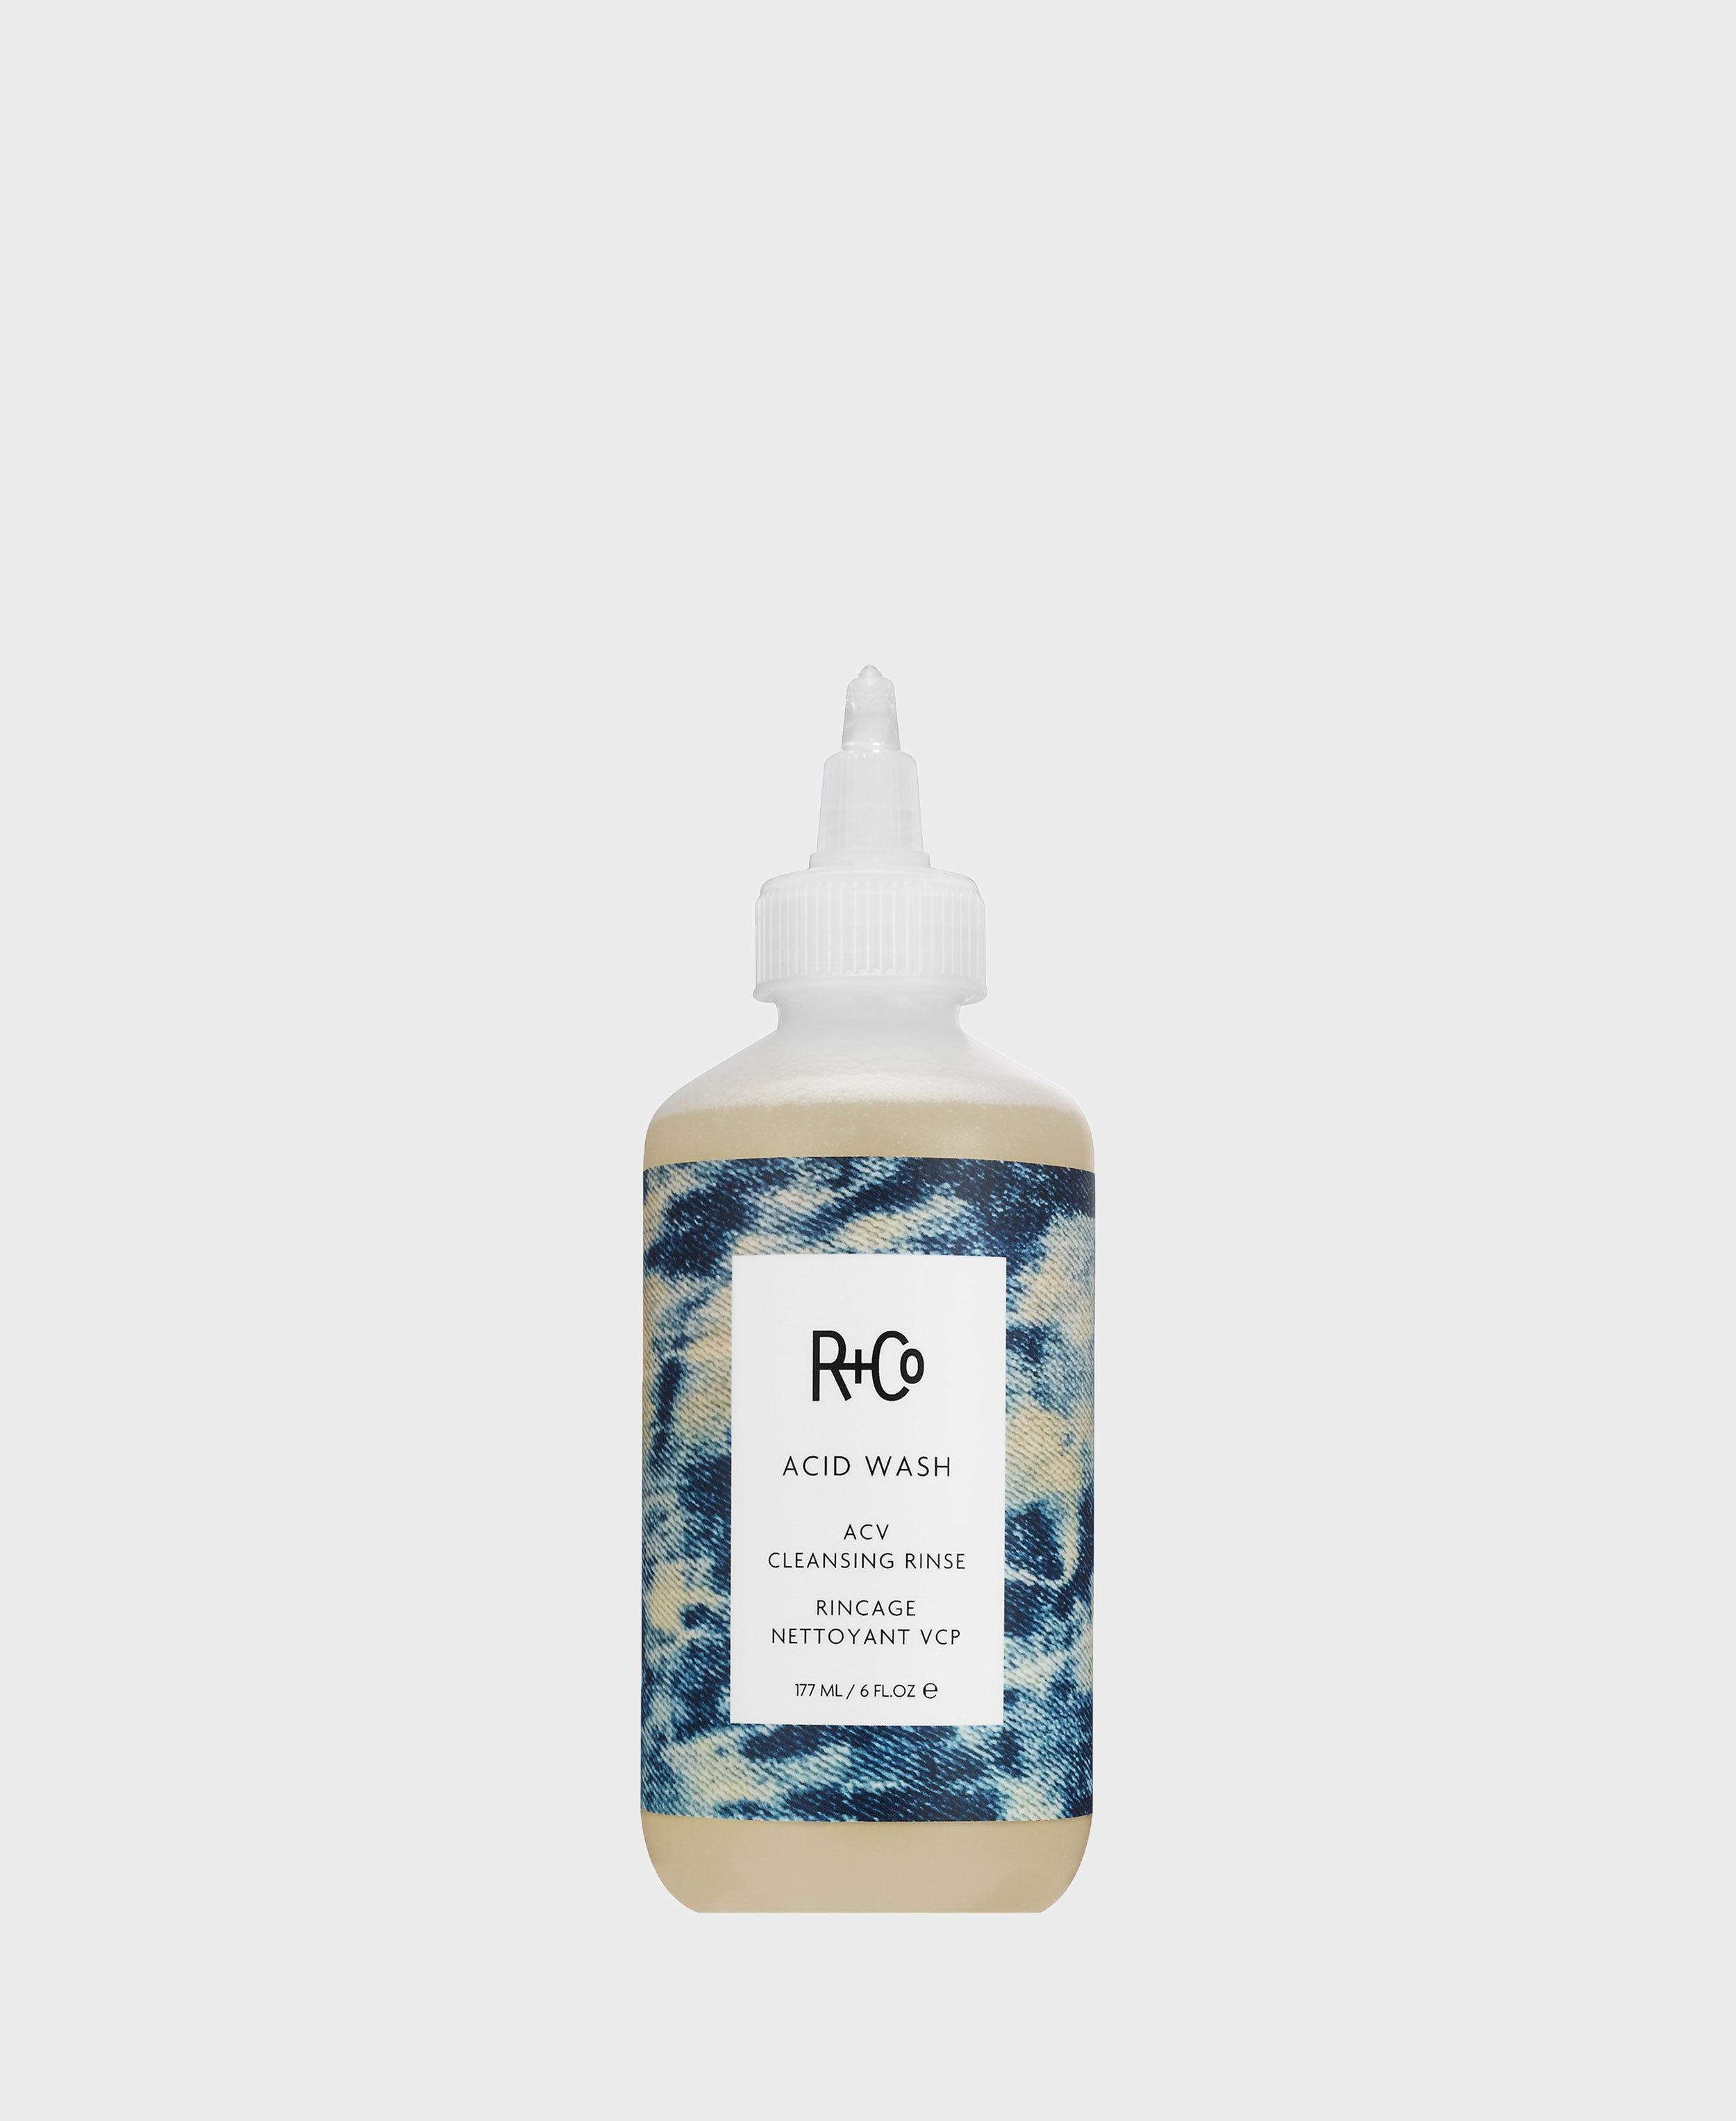 ACID WASH ACV CLEANSING RINSE